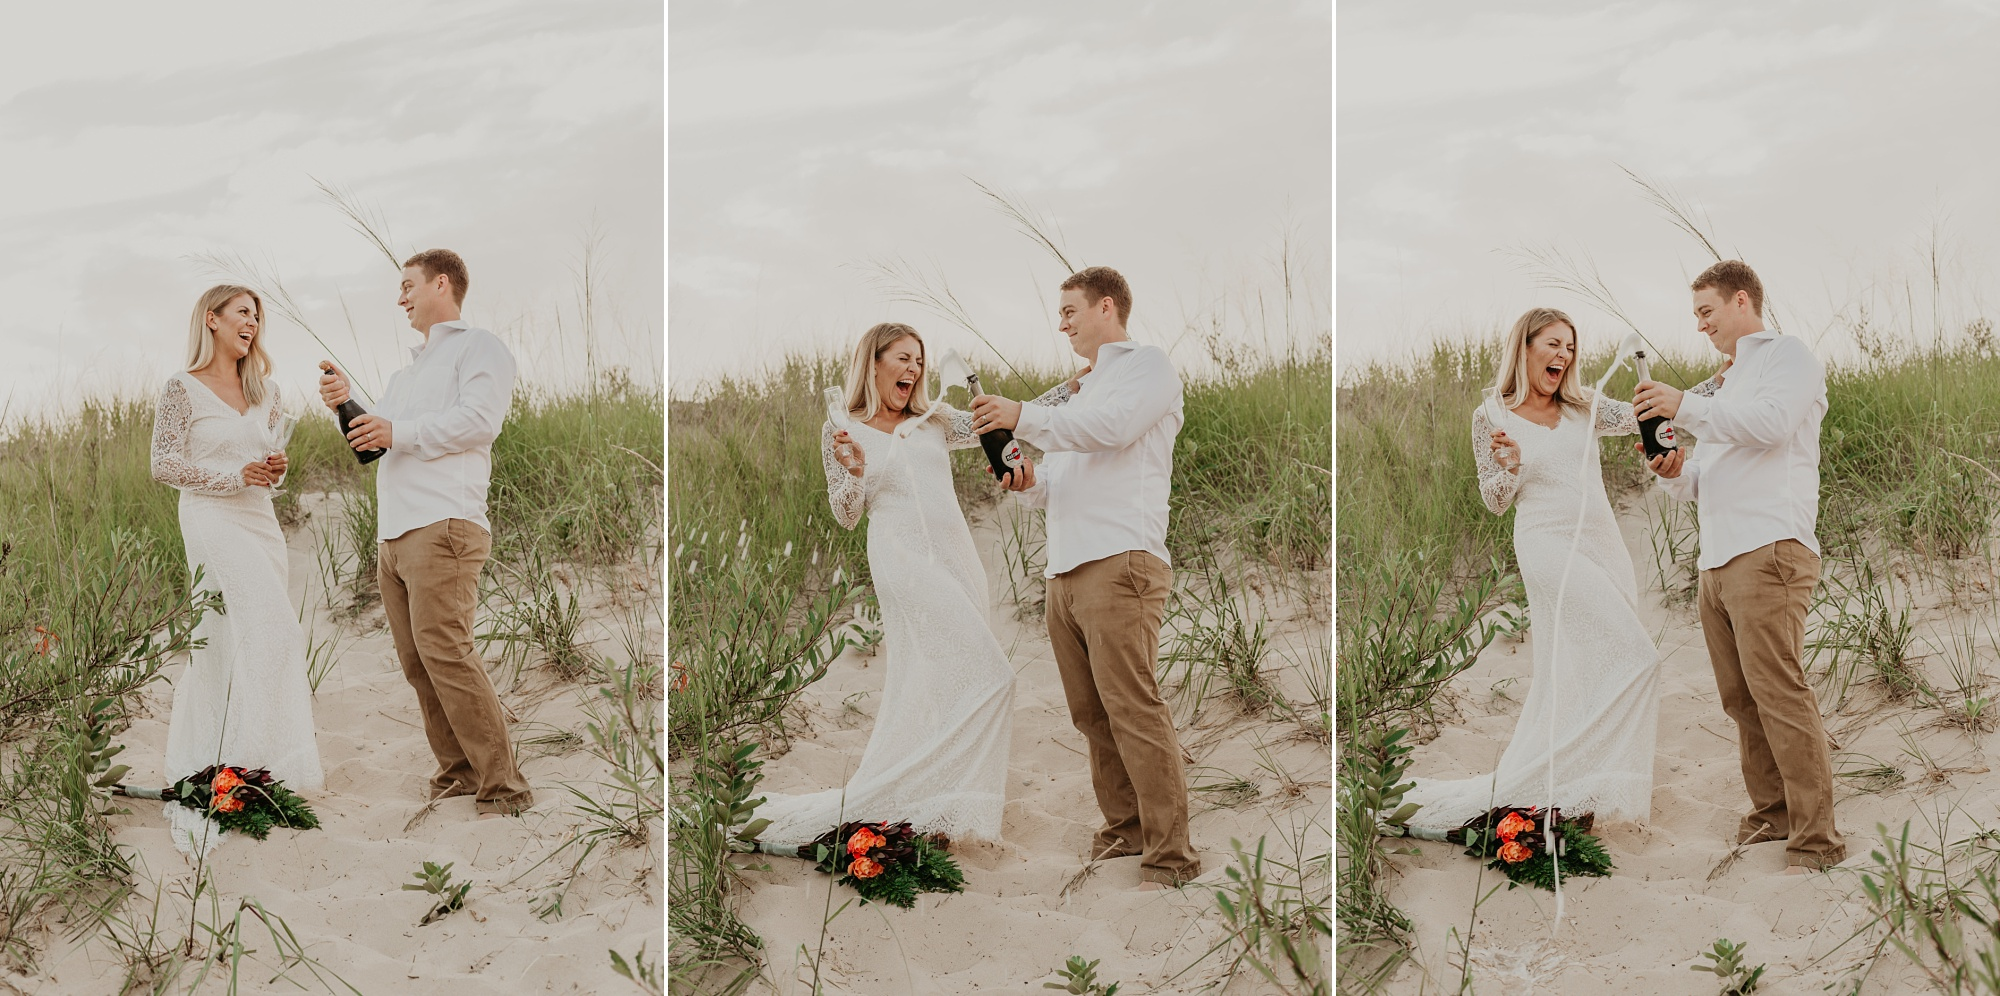 Romantic elopement photography in Petoskey